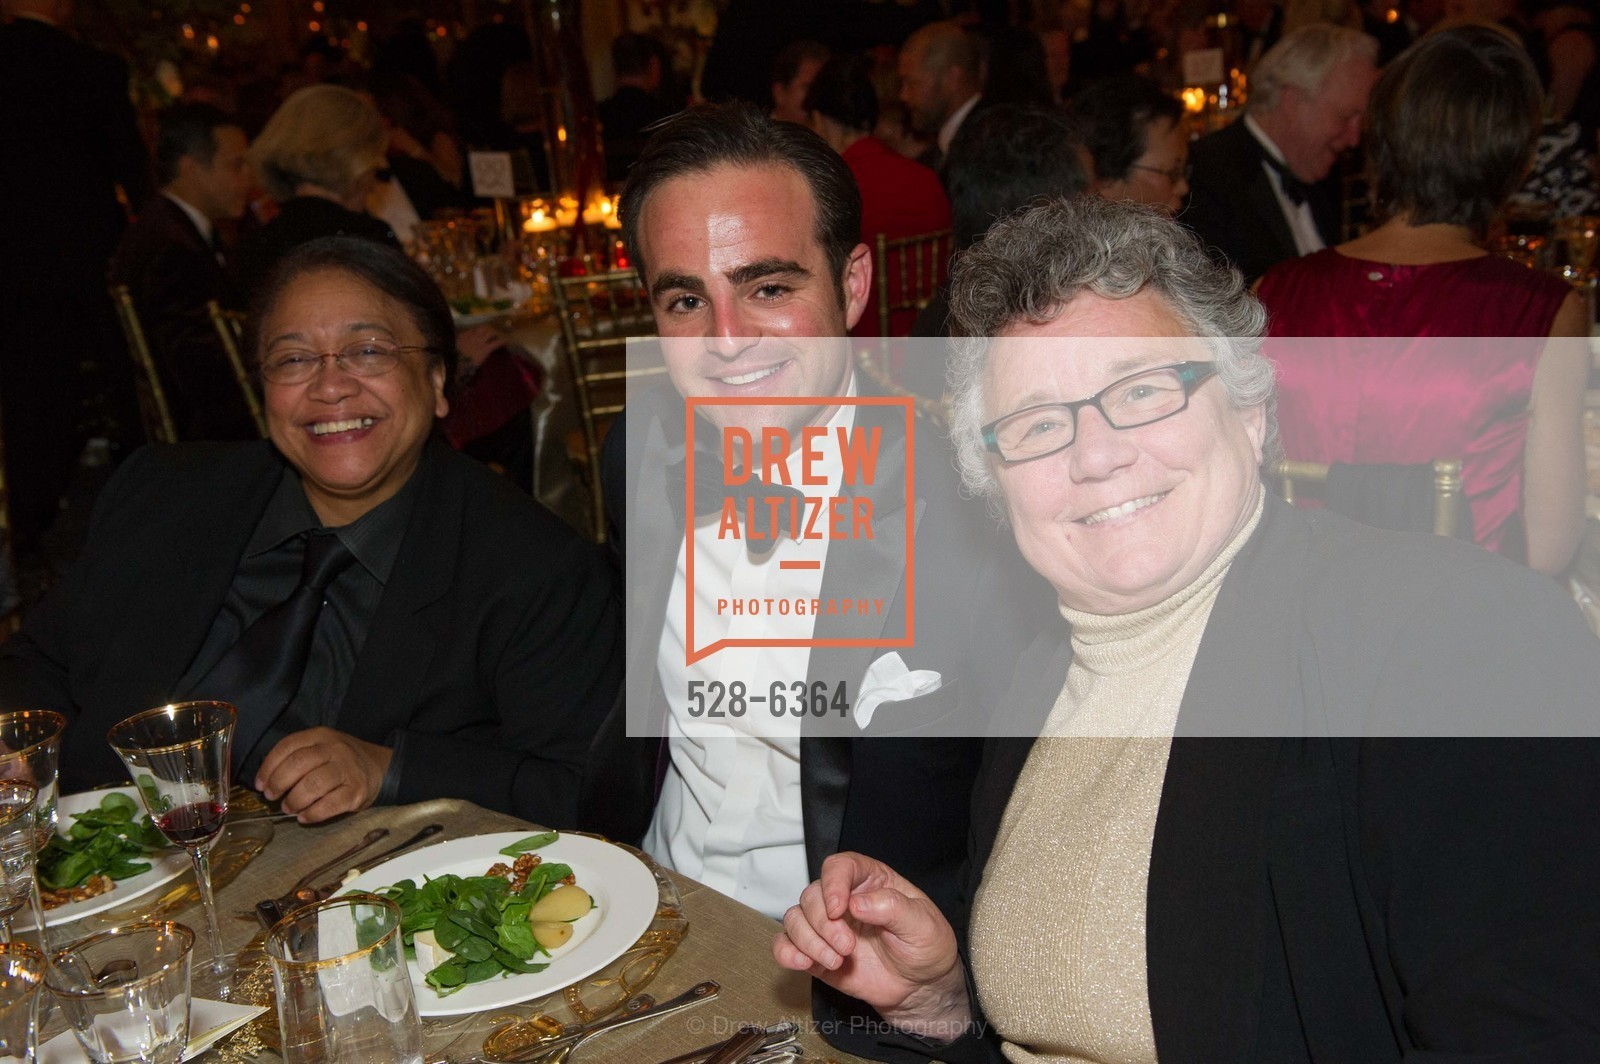 Rita Shimmin, Philip Zackler, Dixie Horning, 25th Anniversary Holiday HOB NOB ON THE HILL, US, December 6th, 2013,Drew Altizer, Drew Altizer Photography, full-service agency, private events, San Francisco photographer, photographer california